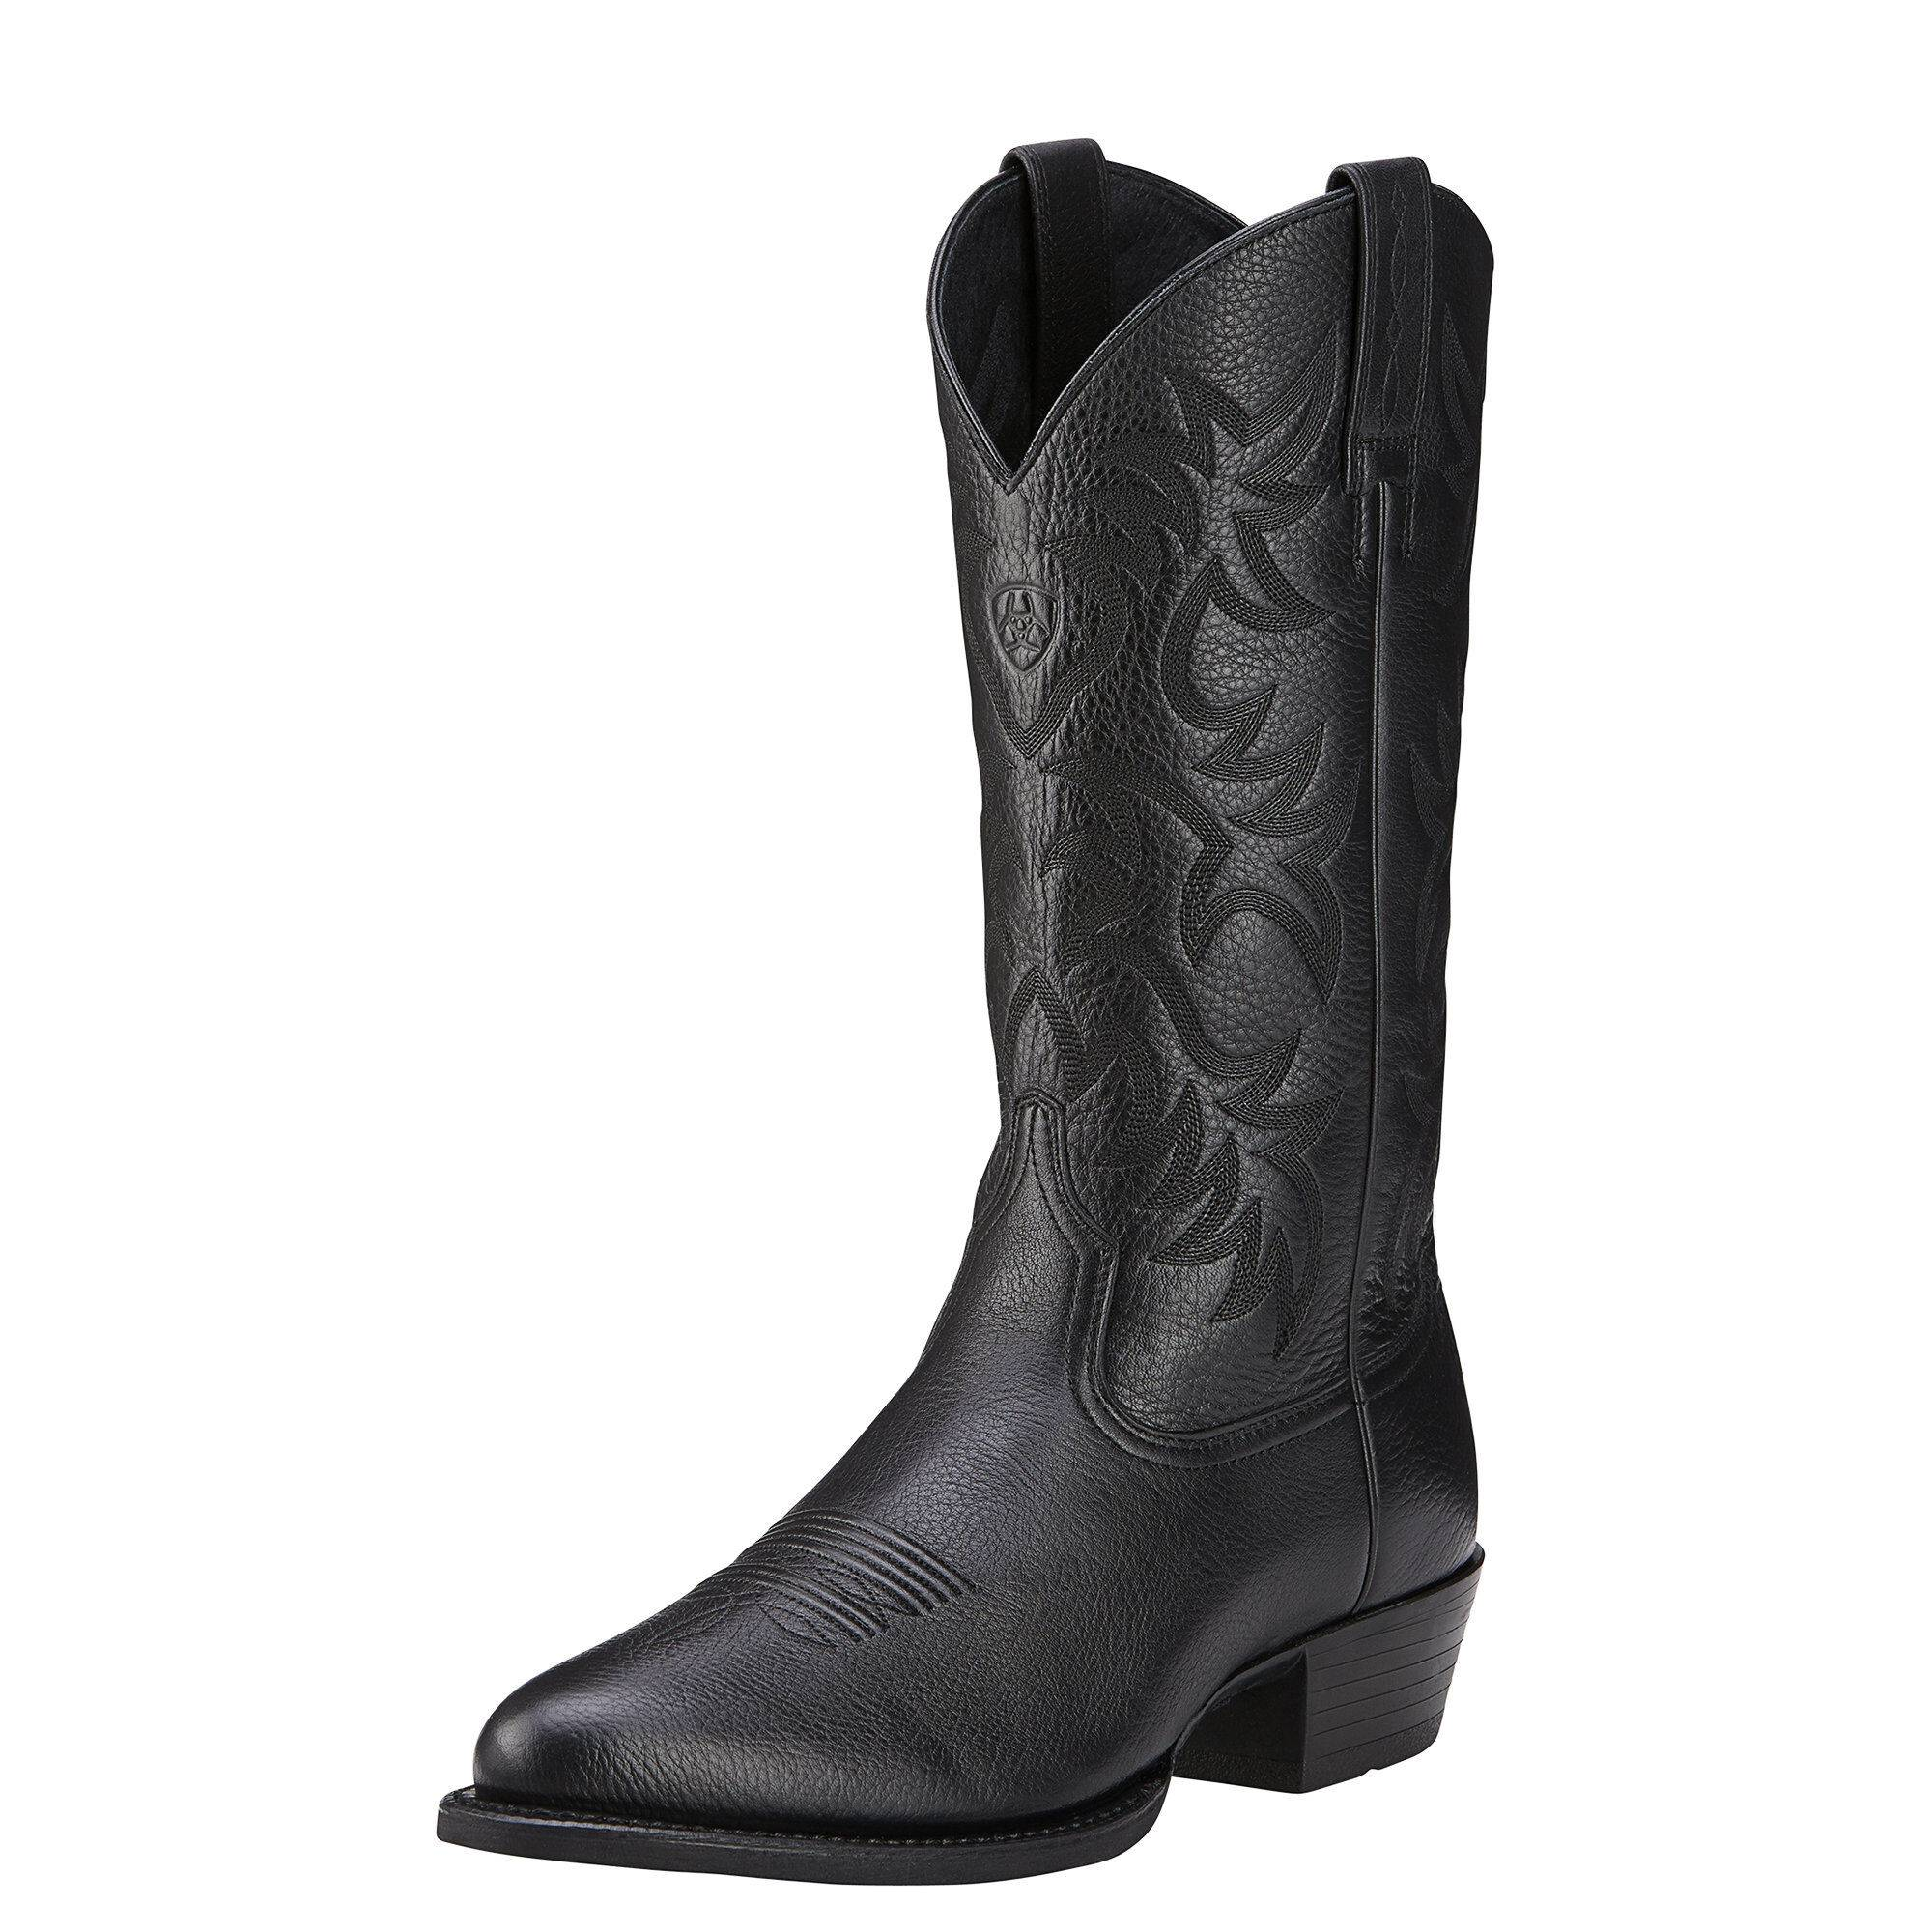 Ariat Men's Heritage R Toe Western Boots in Black Deertan Leather, Size 12 B / Narrow by Ariat